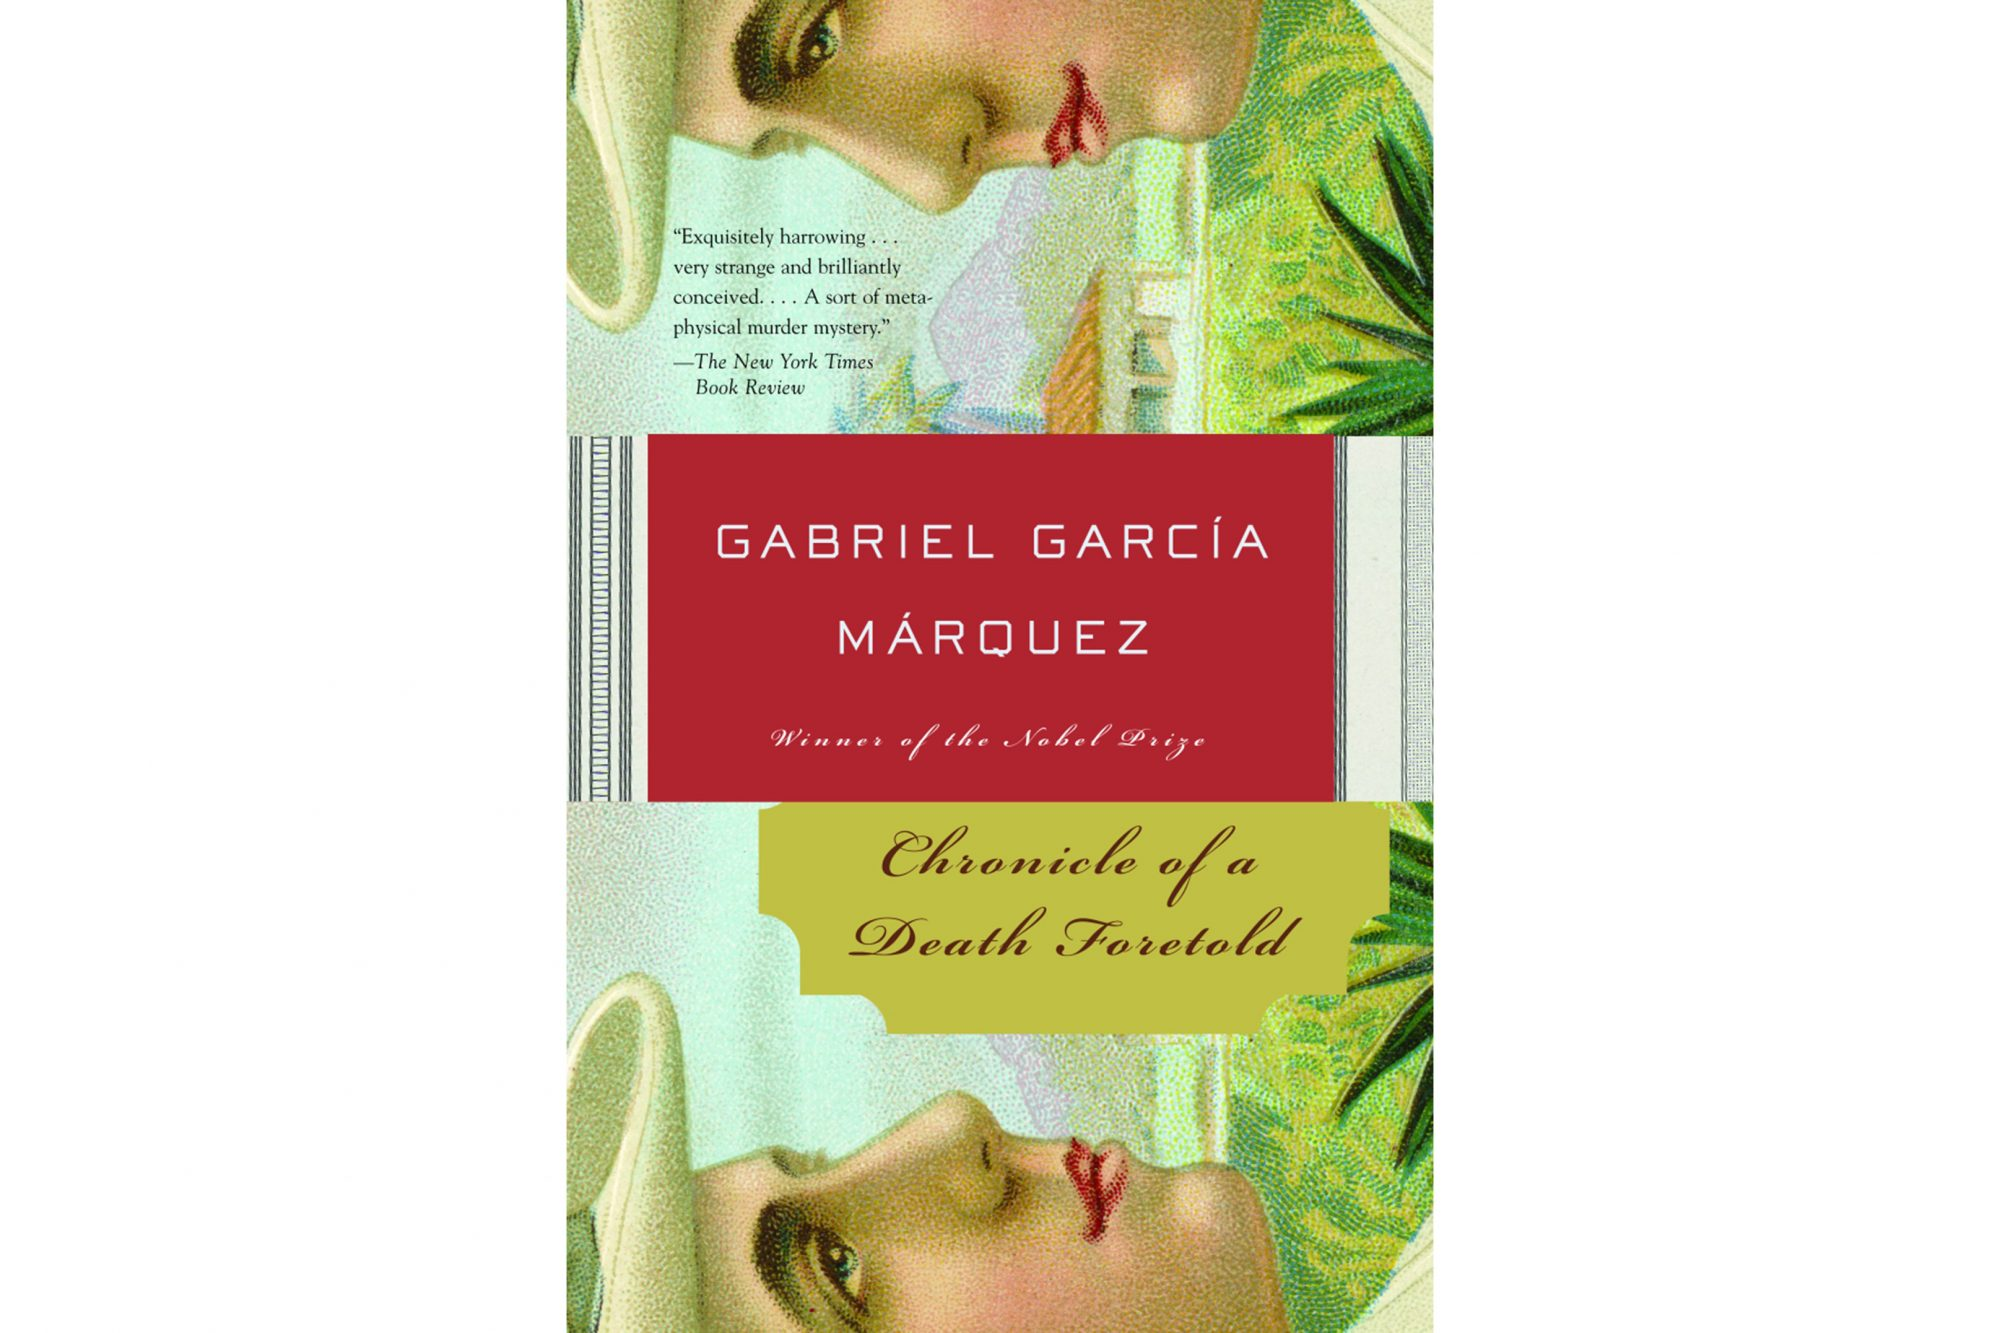 Chronicle of a Death Foretold, by Gabriel García Márquez